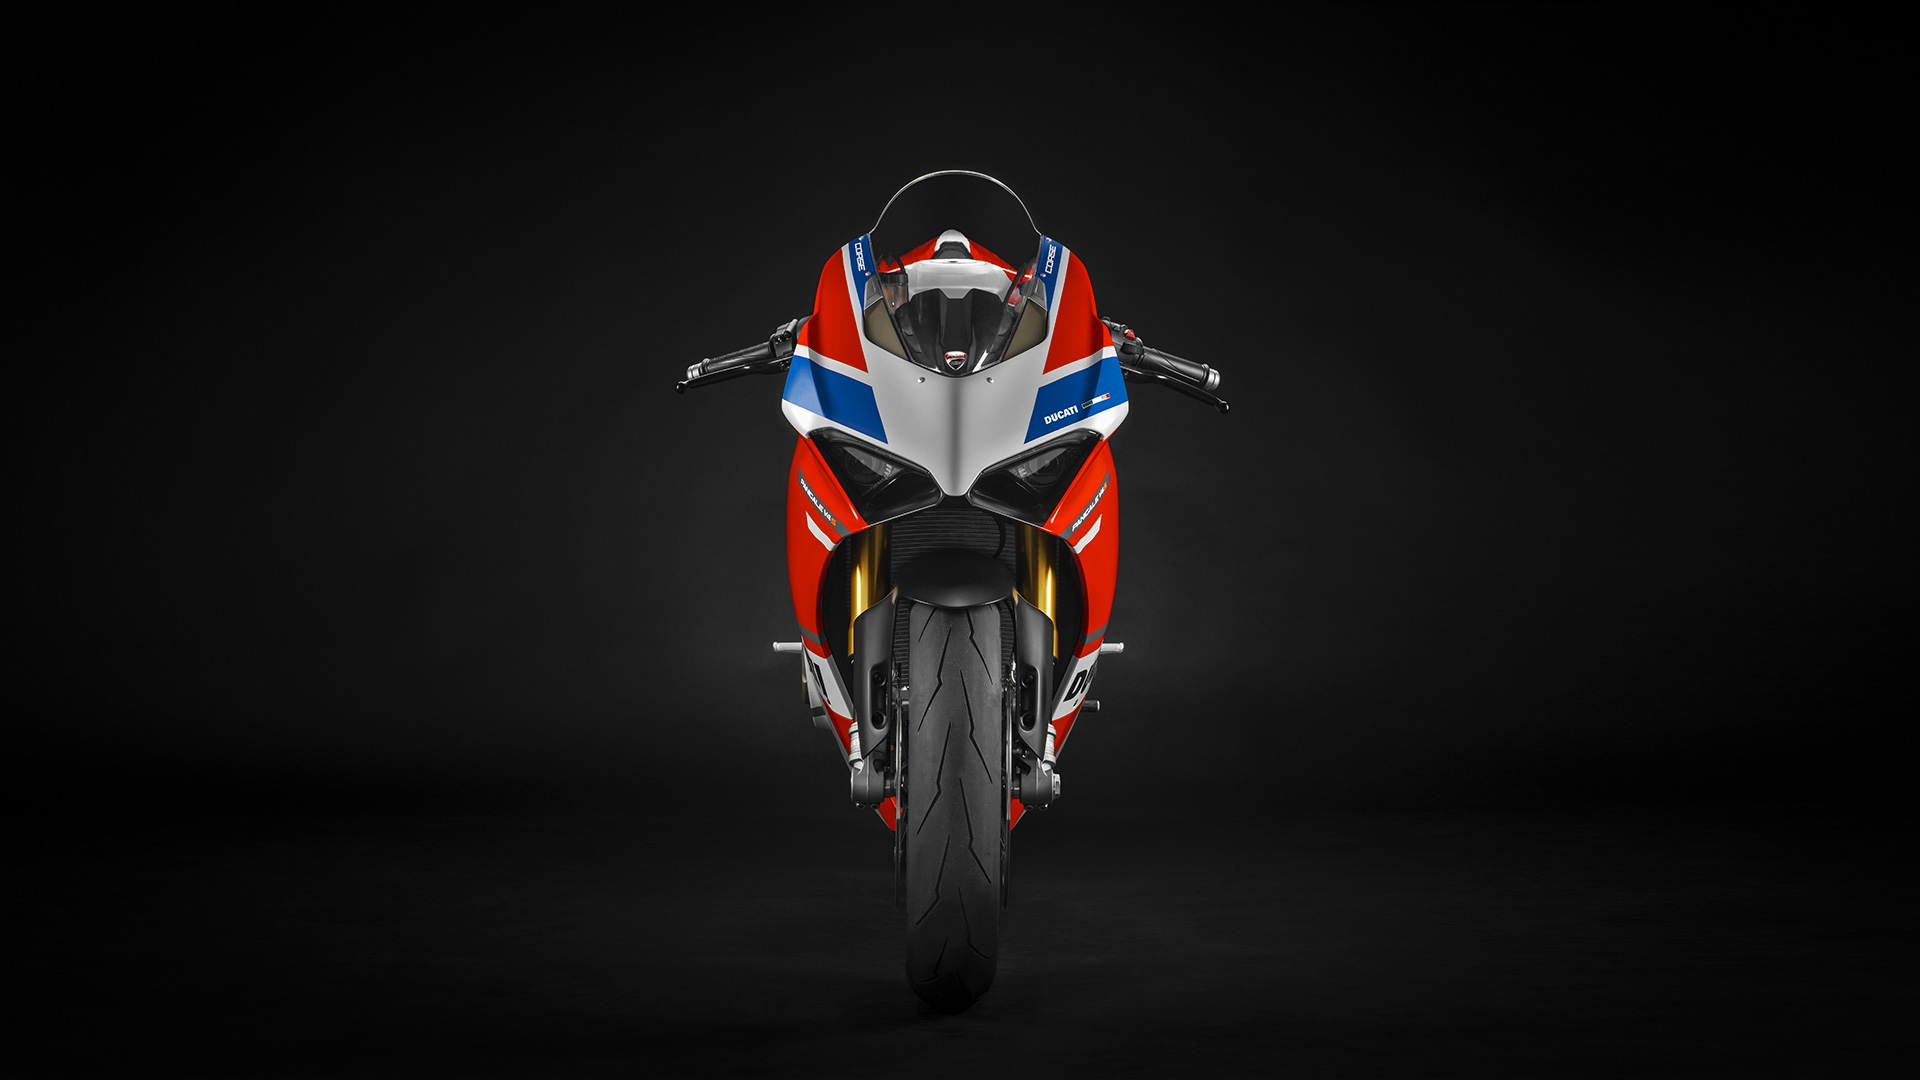 Panigale-V4S-Corse-MY19-06-Gallery-1920x1080